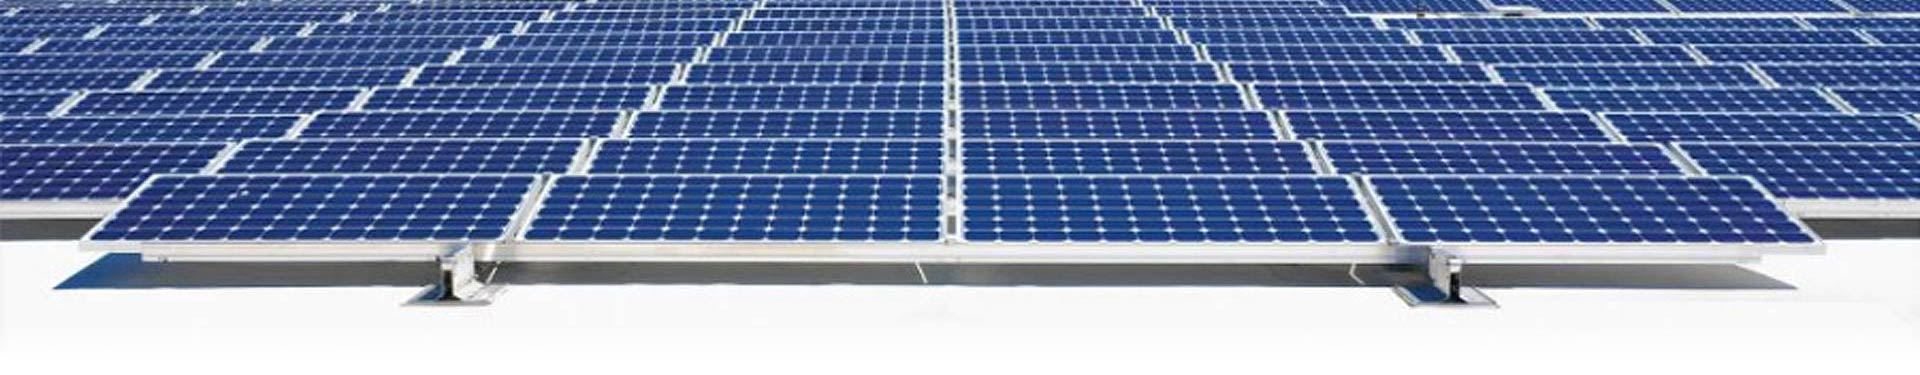 TPO Roofing with PV Solar Panels